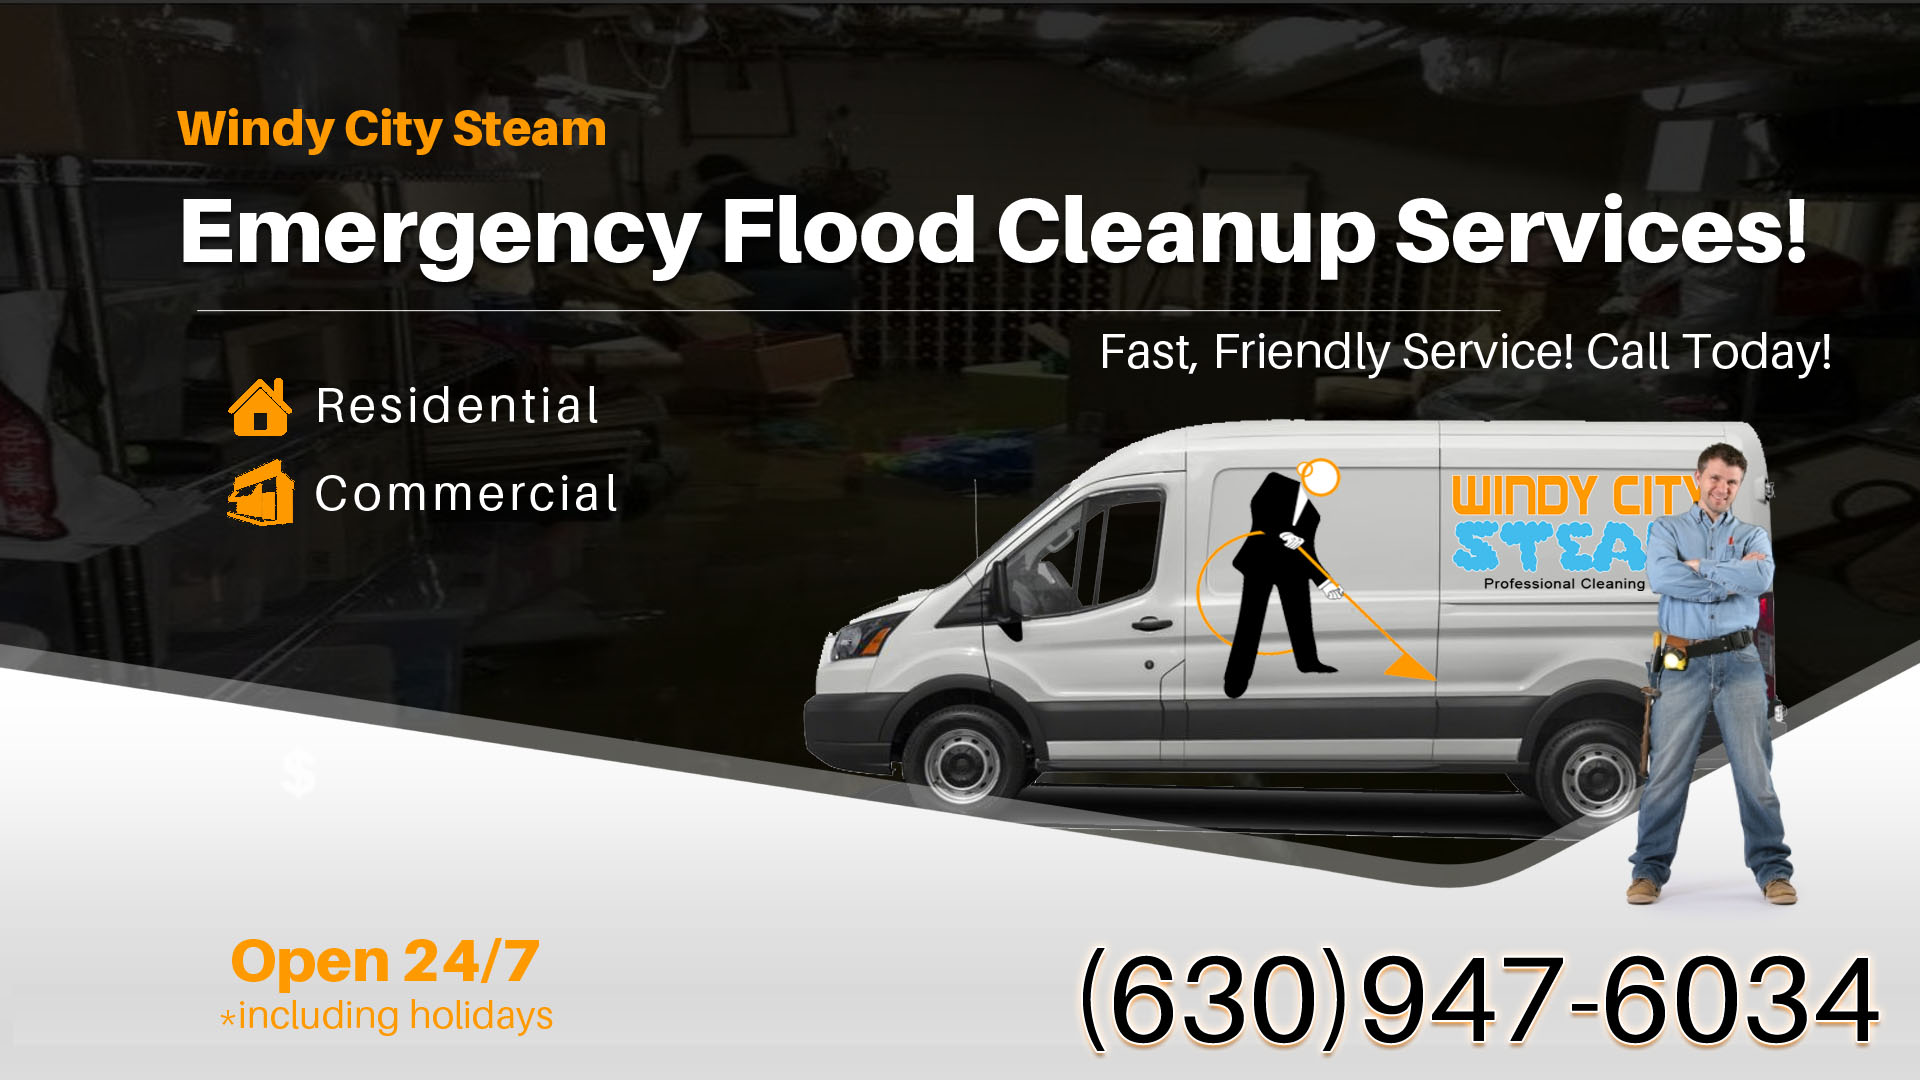 Emergency Flood Cleanup